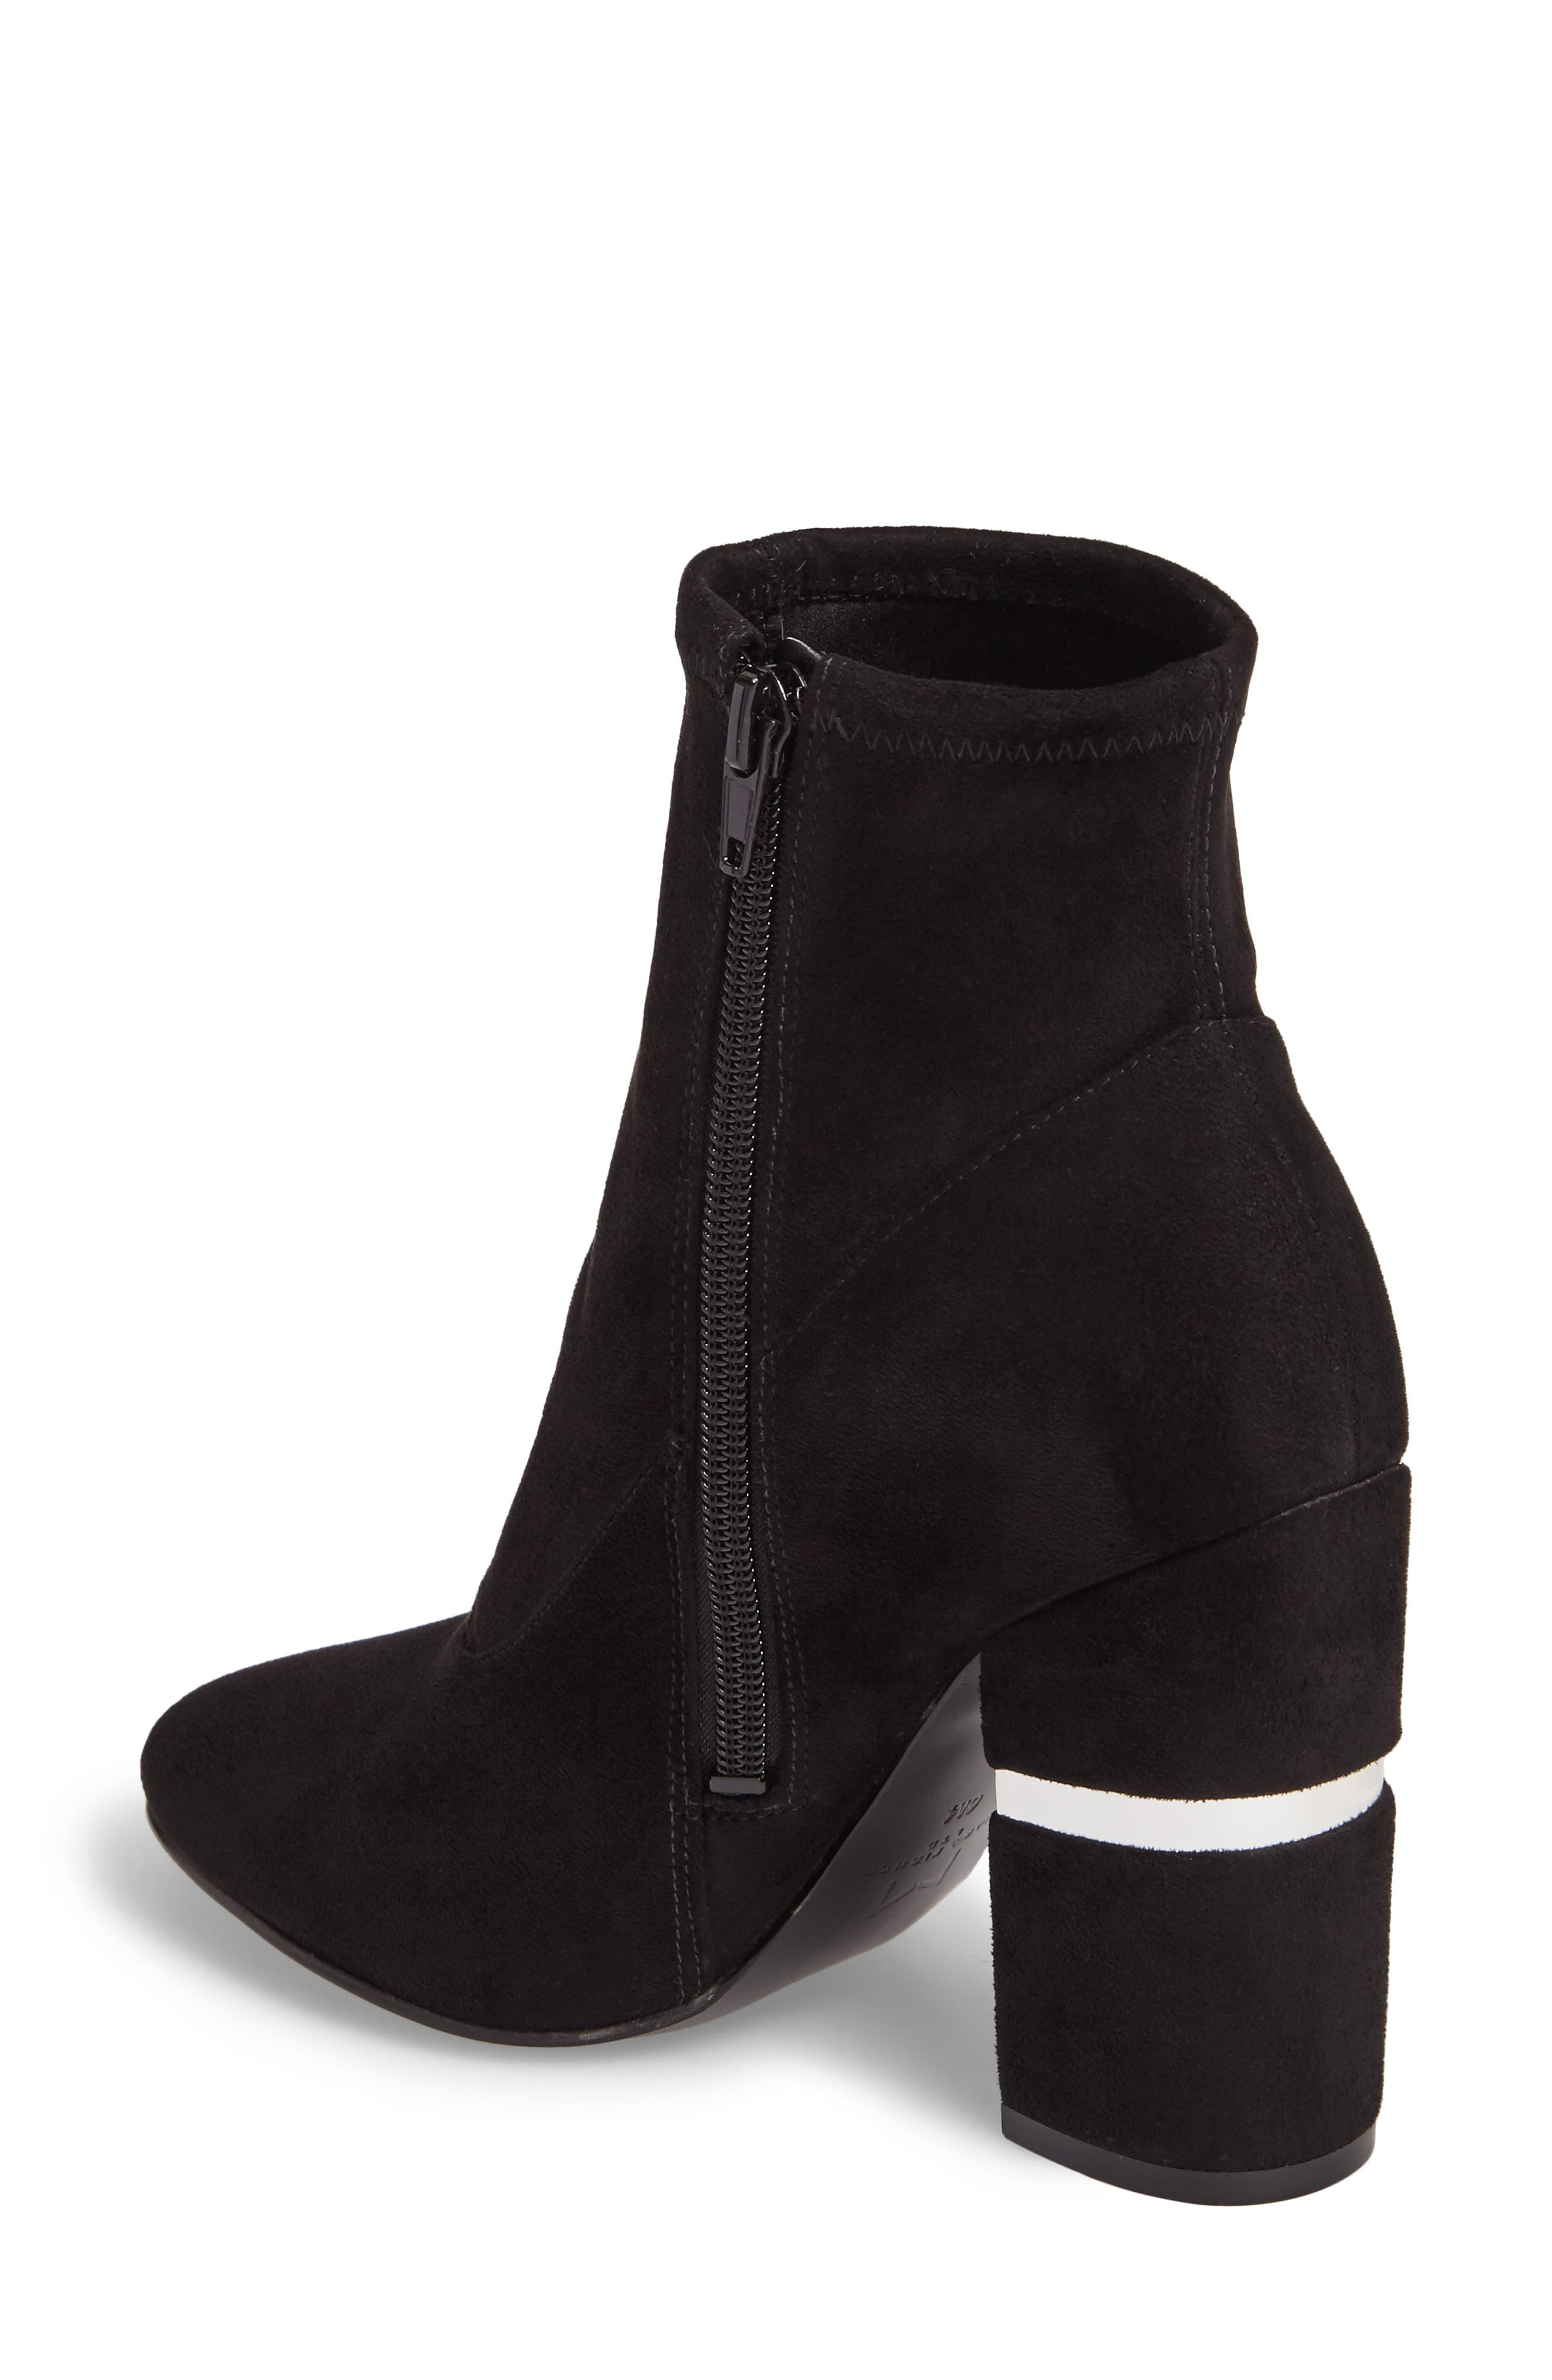 Padda Embellished Stretch Bootie,                             Alternate thumbnail 2, color,                             001